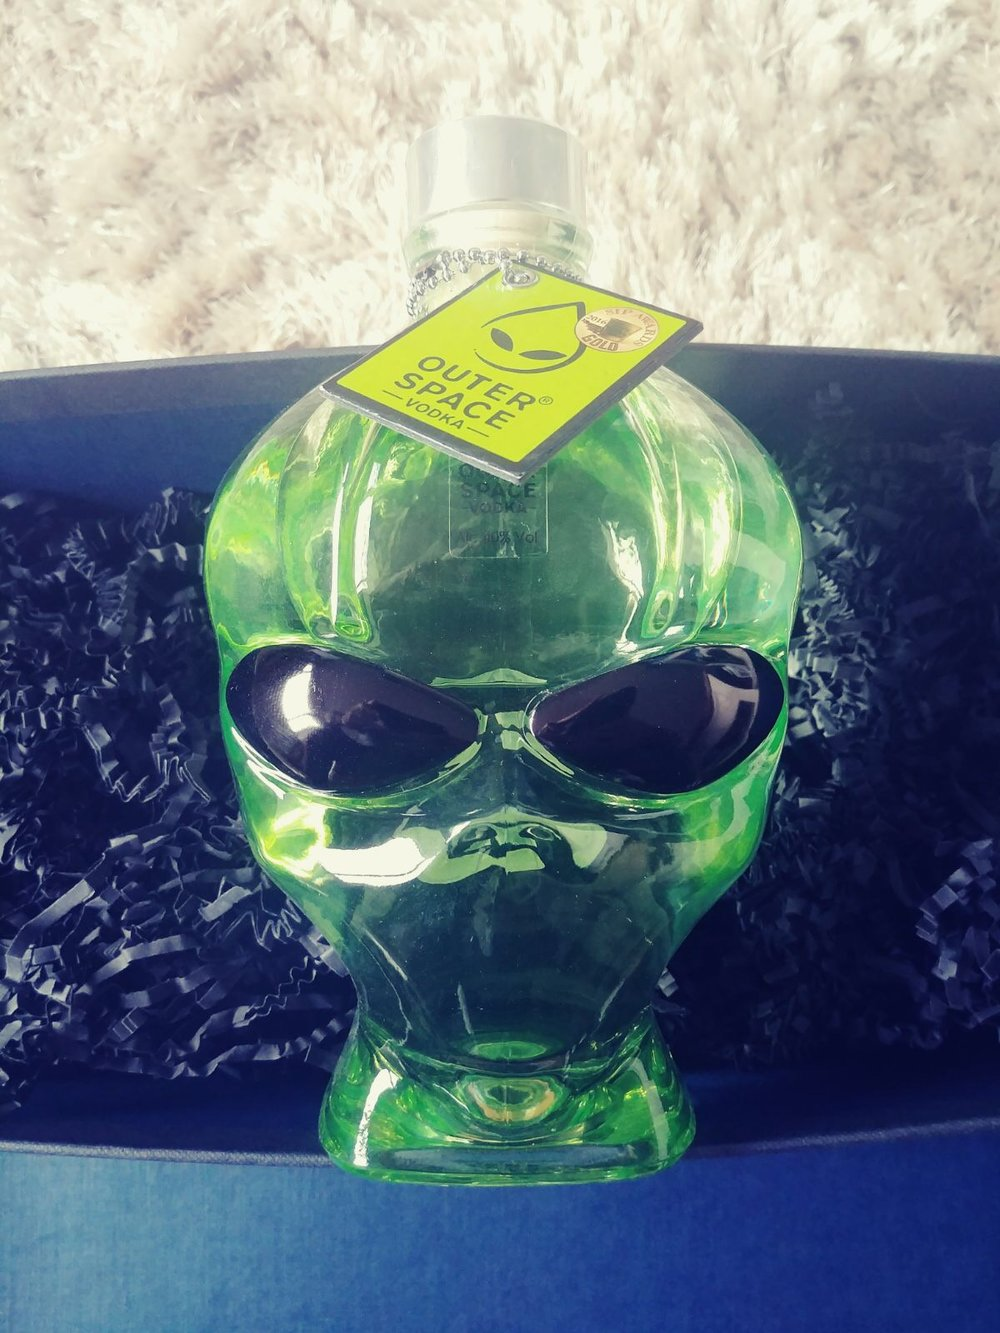 Outerspace Vodka Halloween